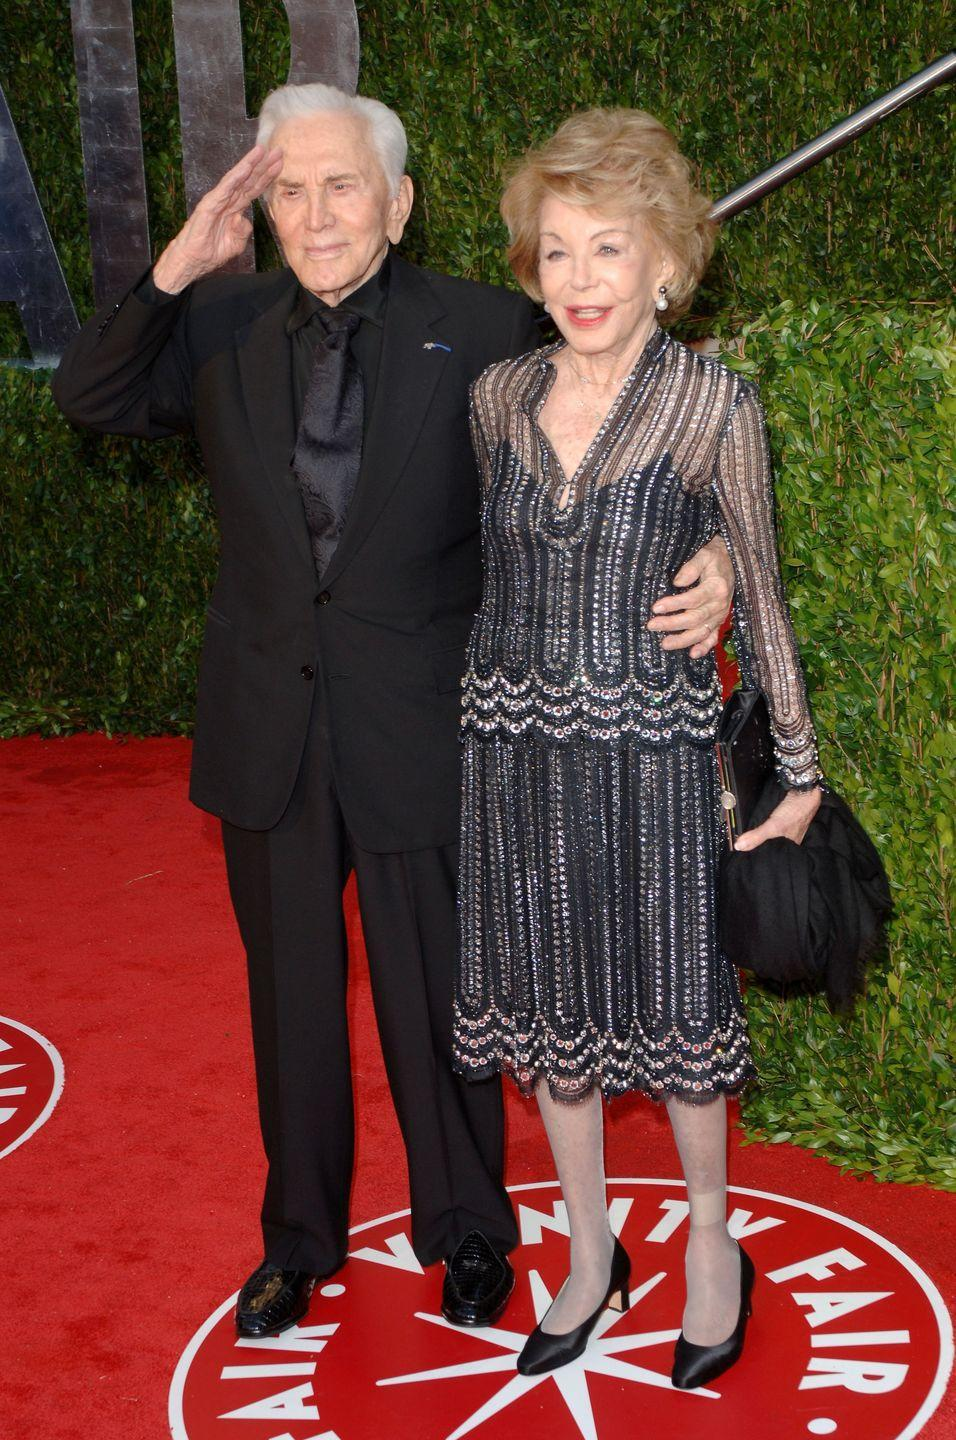 <p>Douglas and Buydens arrive at the 2010 Vanity Fair Oscar Party. </p>